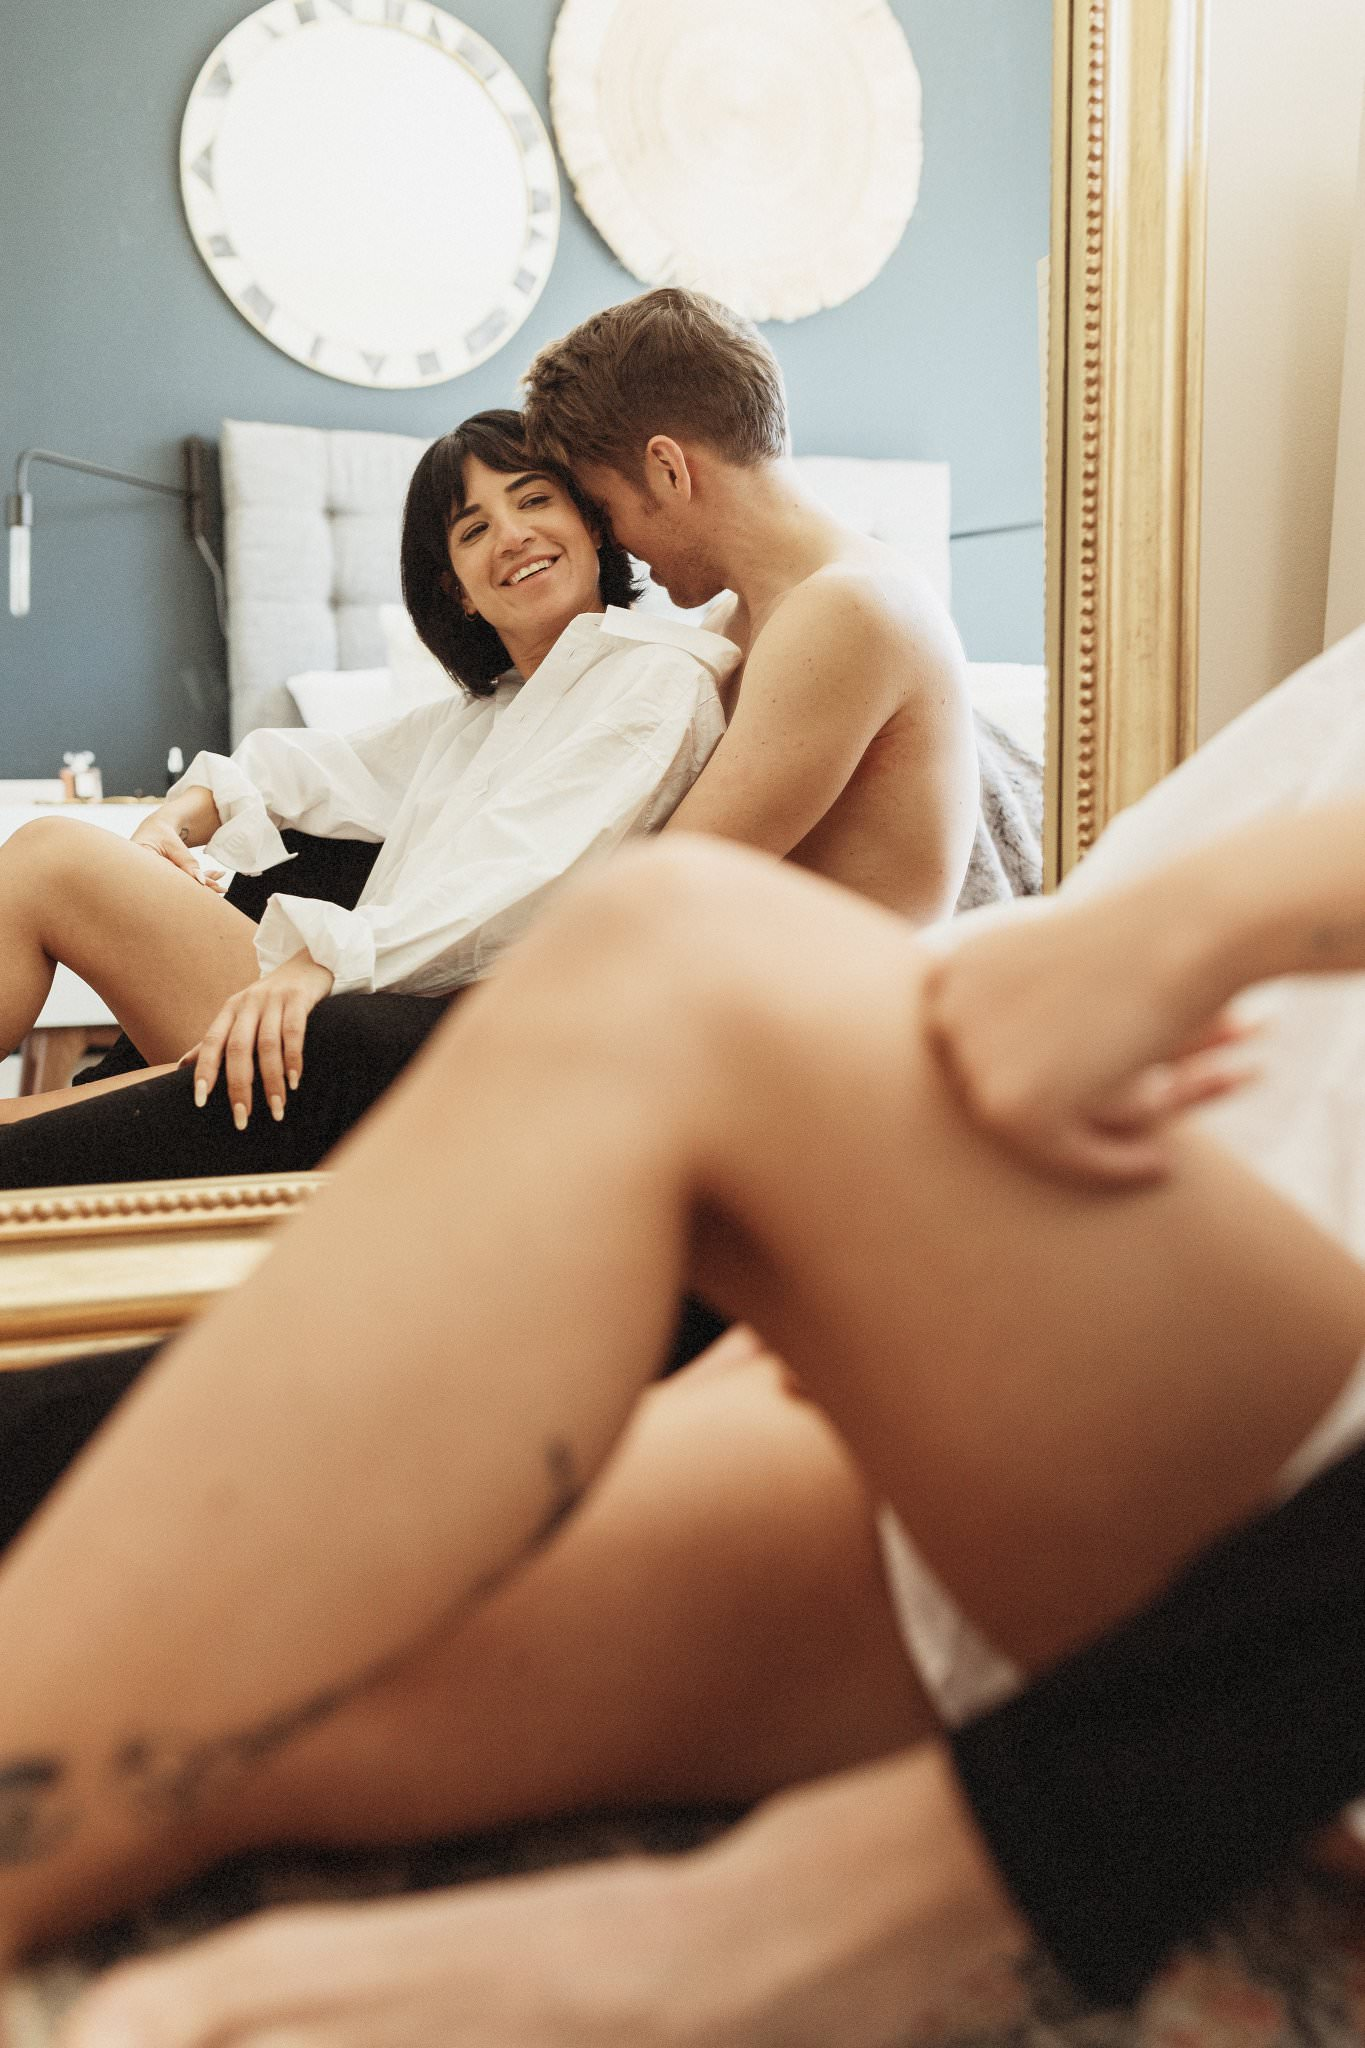 Woman in white shirt and man sit and hold each other in front of a mirror in a couples boudoir session